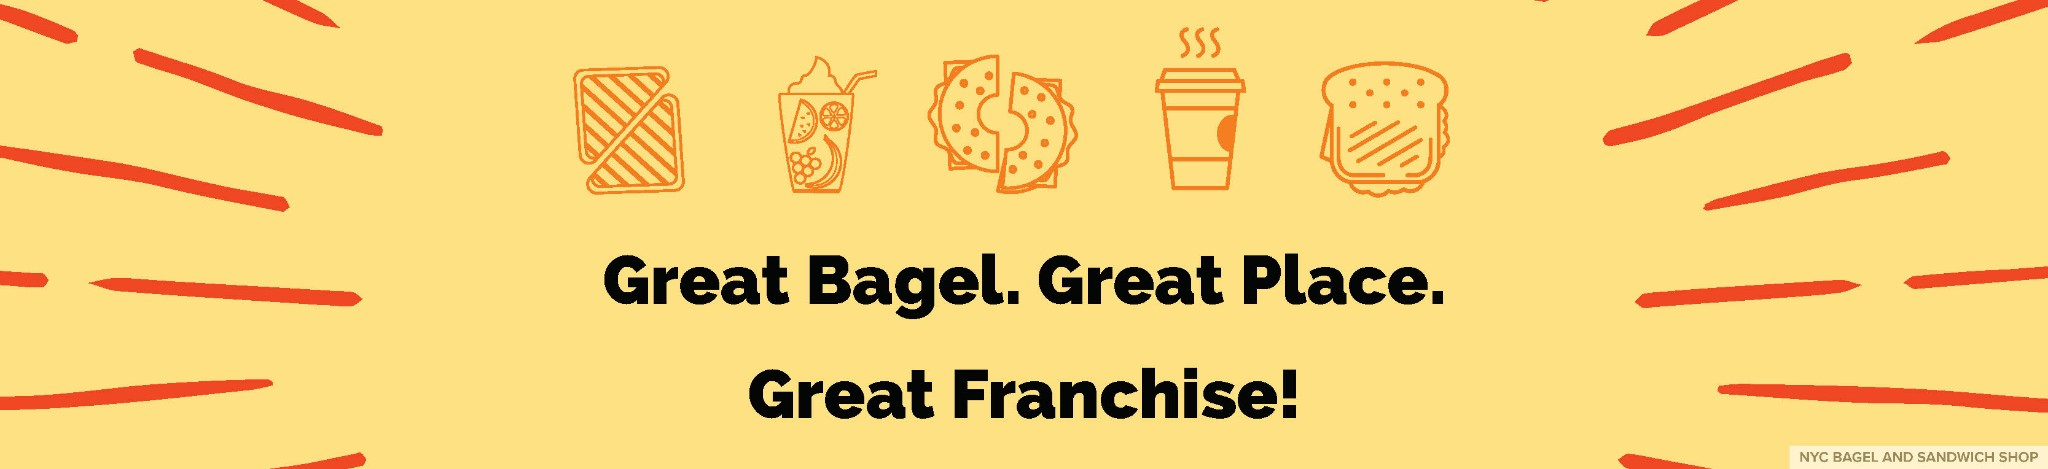 great_franchise_slide_nyc_bagel_franchise